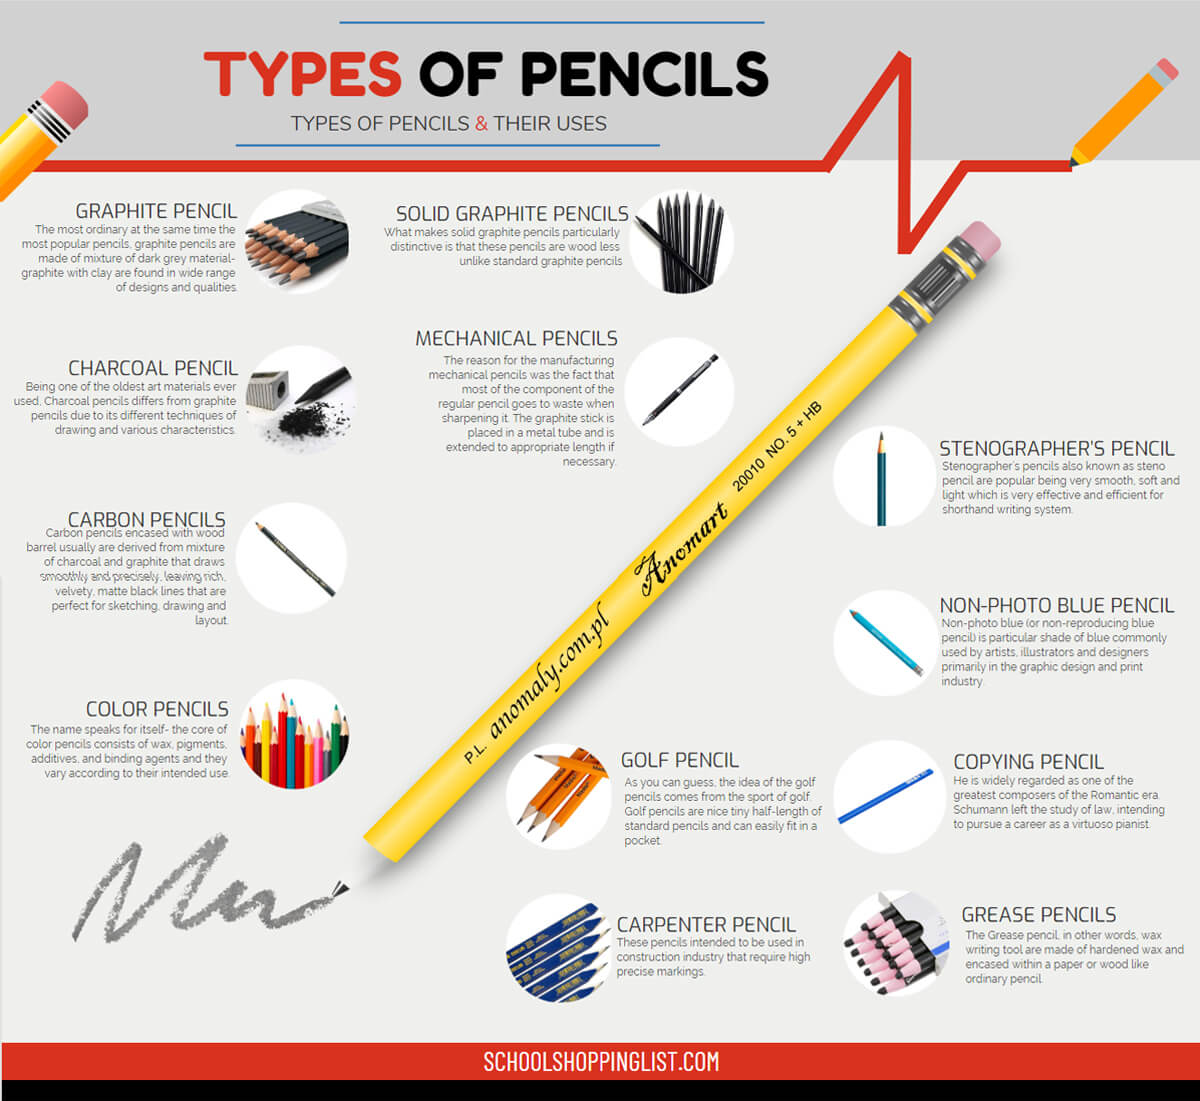 Types of Pencils